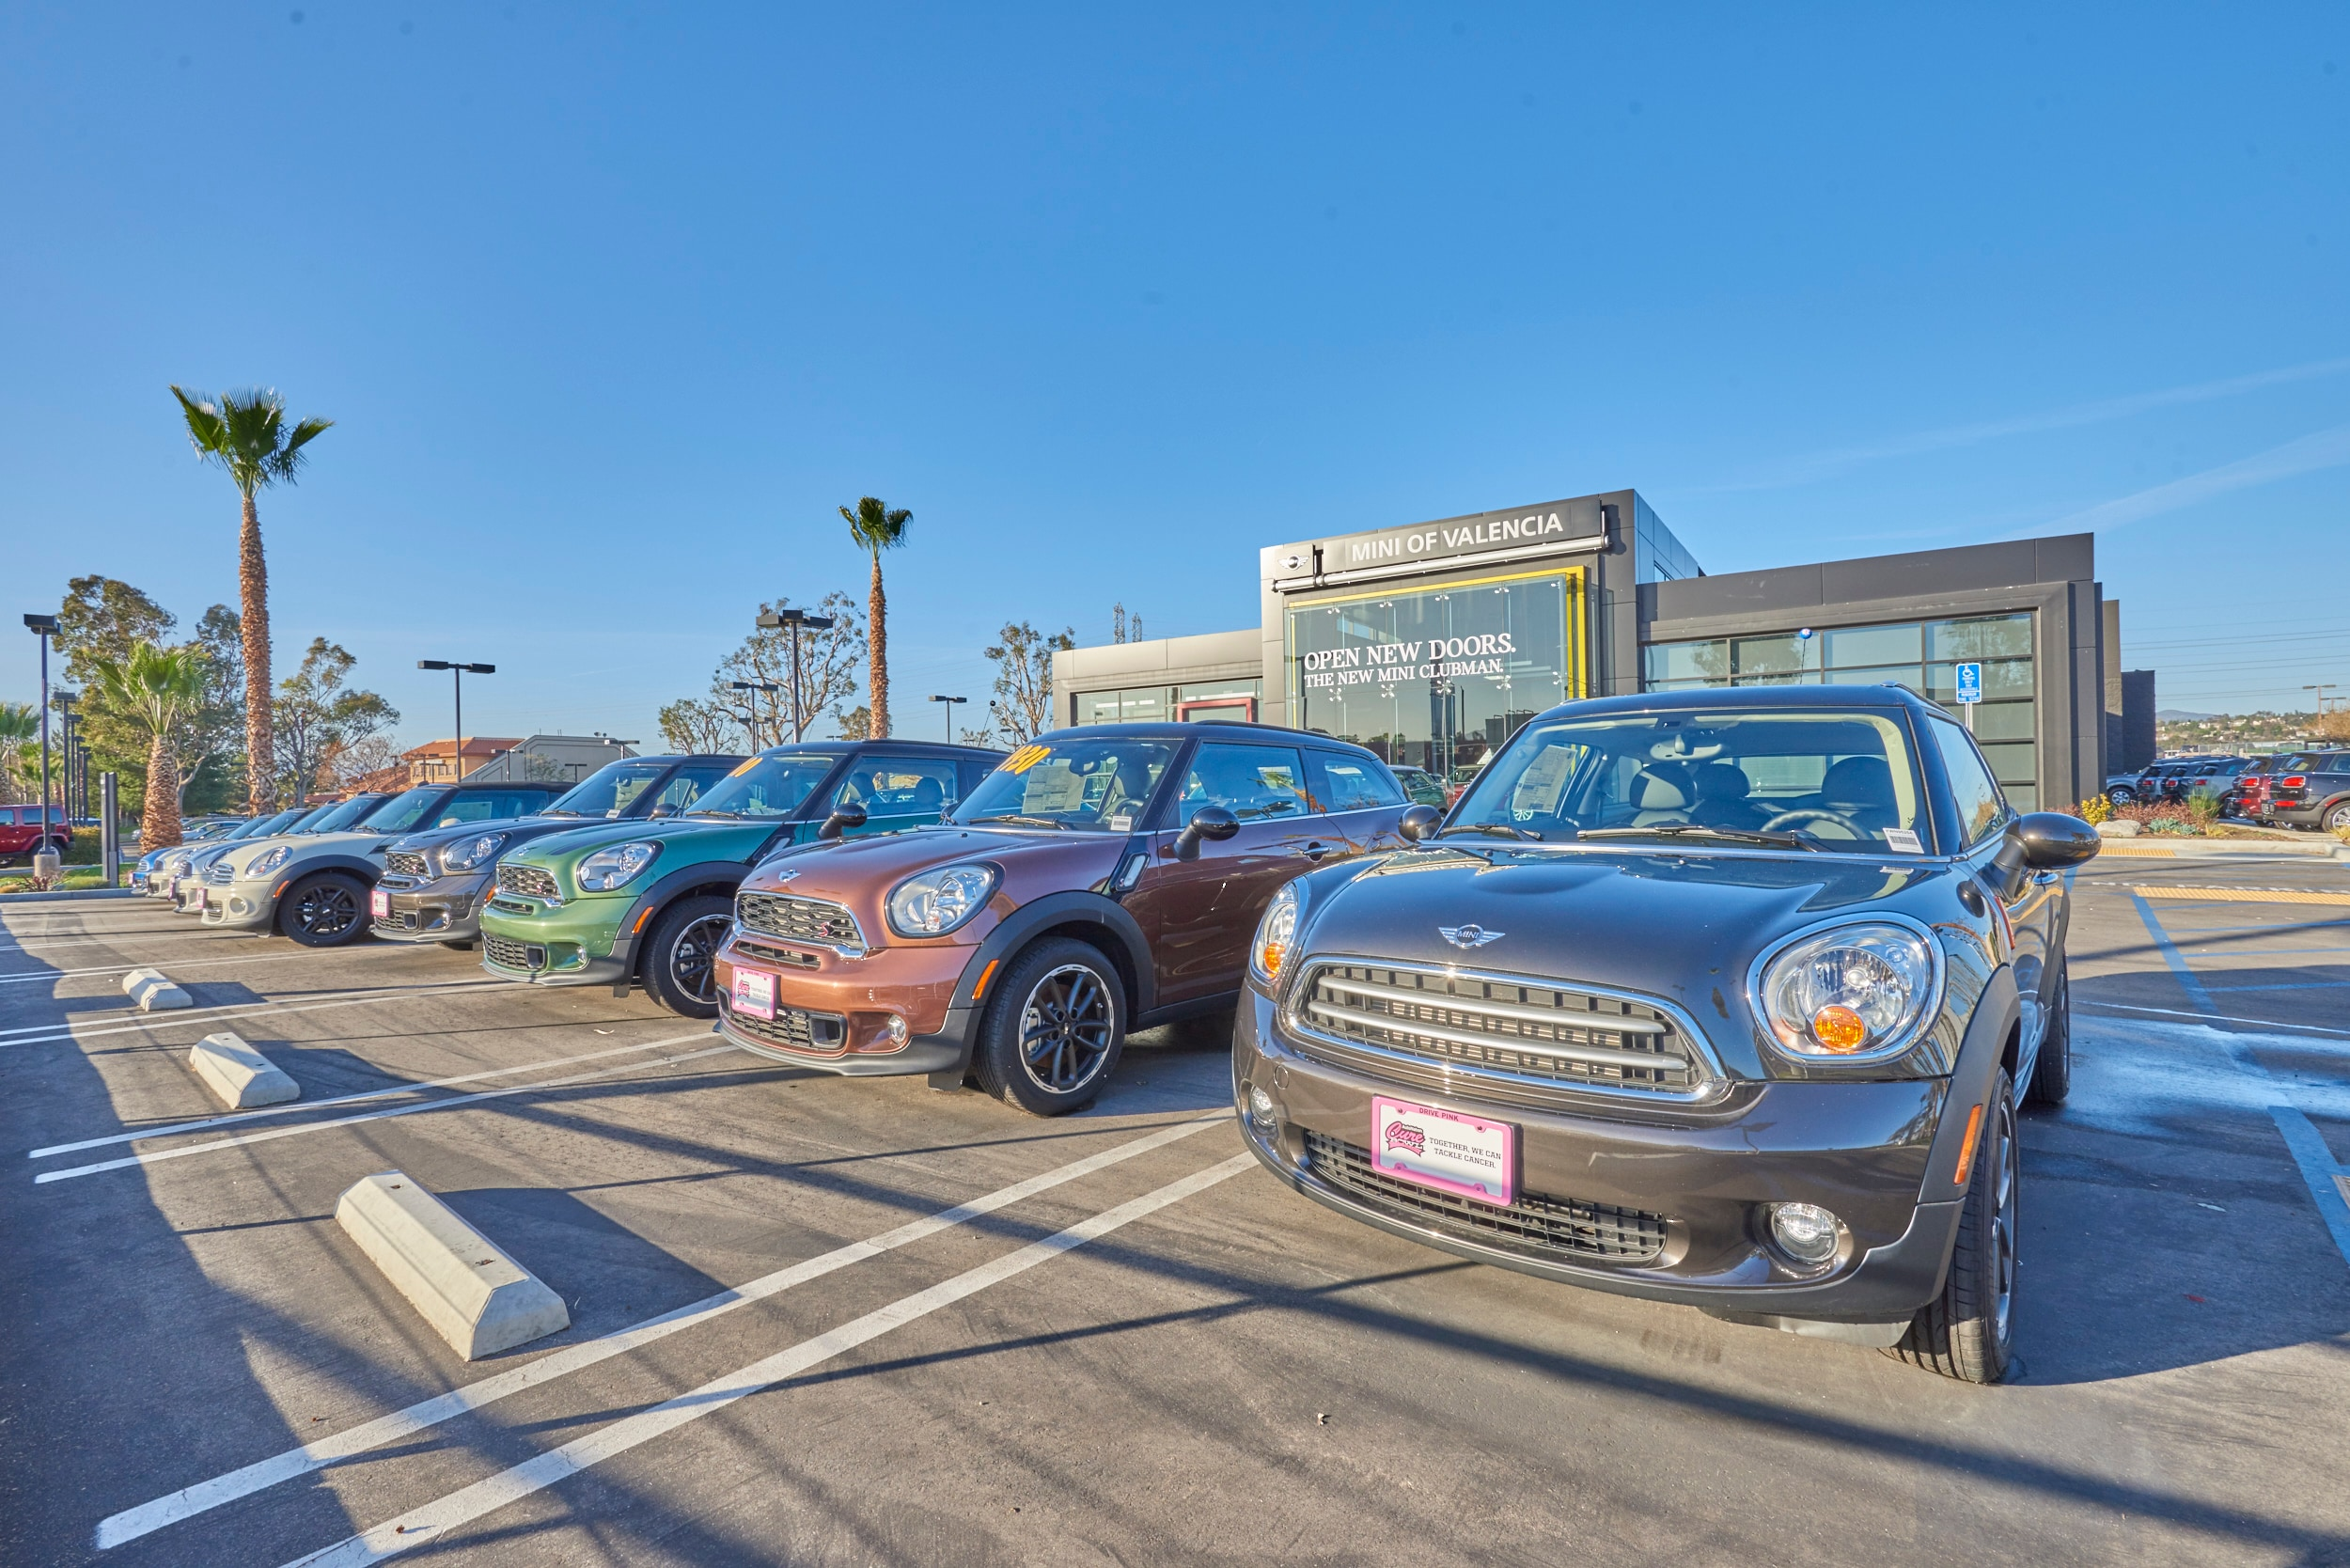 Exterior view of MINI of Valencia Dealership